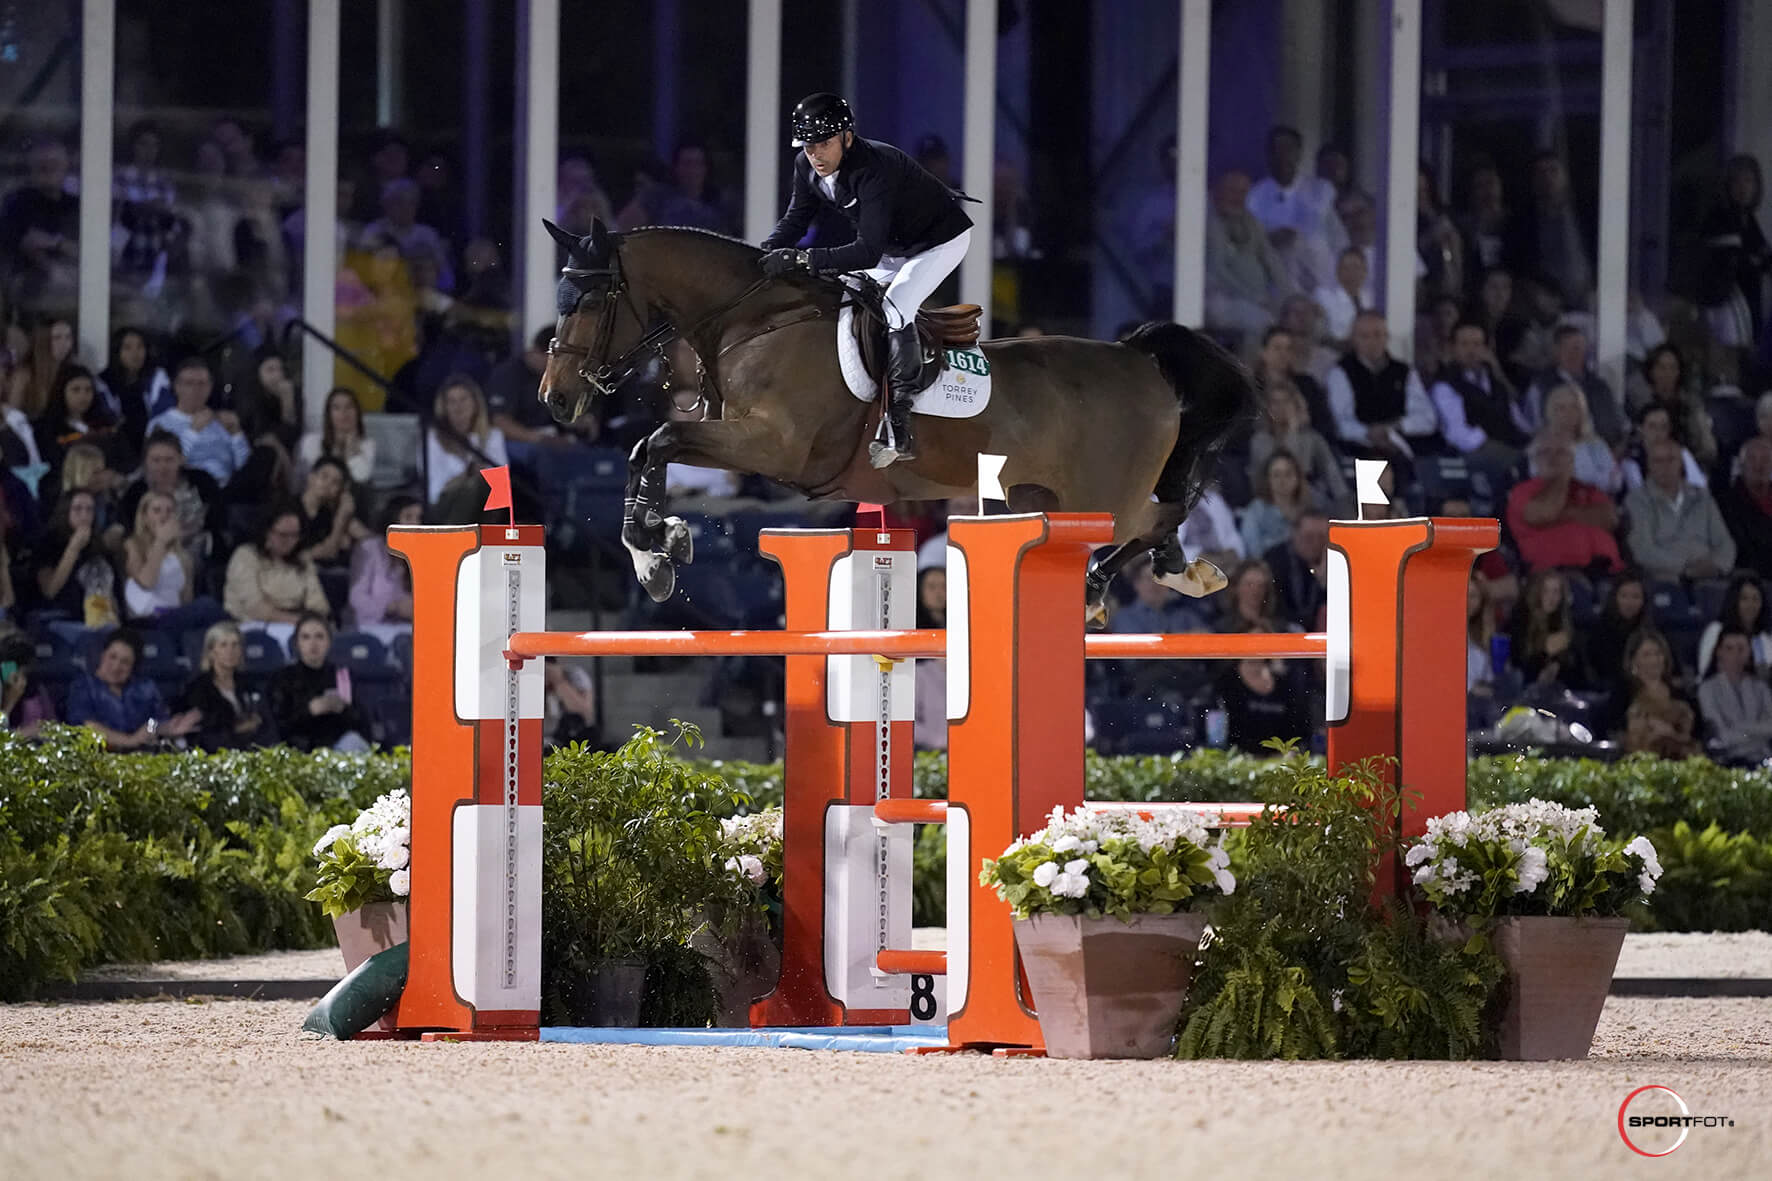 Thumbnail for Eric Lamaze 2nd in NetJets Grand Prix CSI2* at WEF